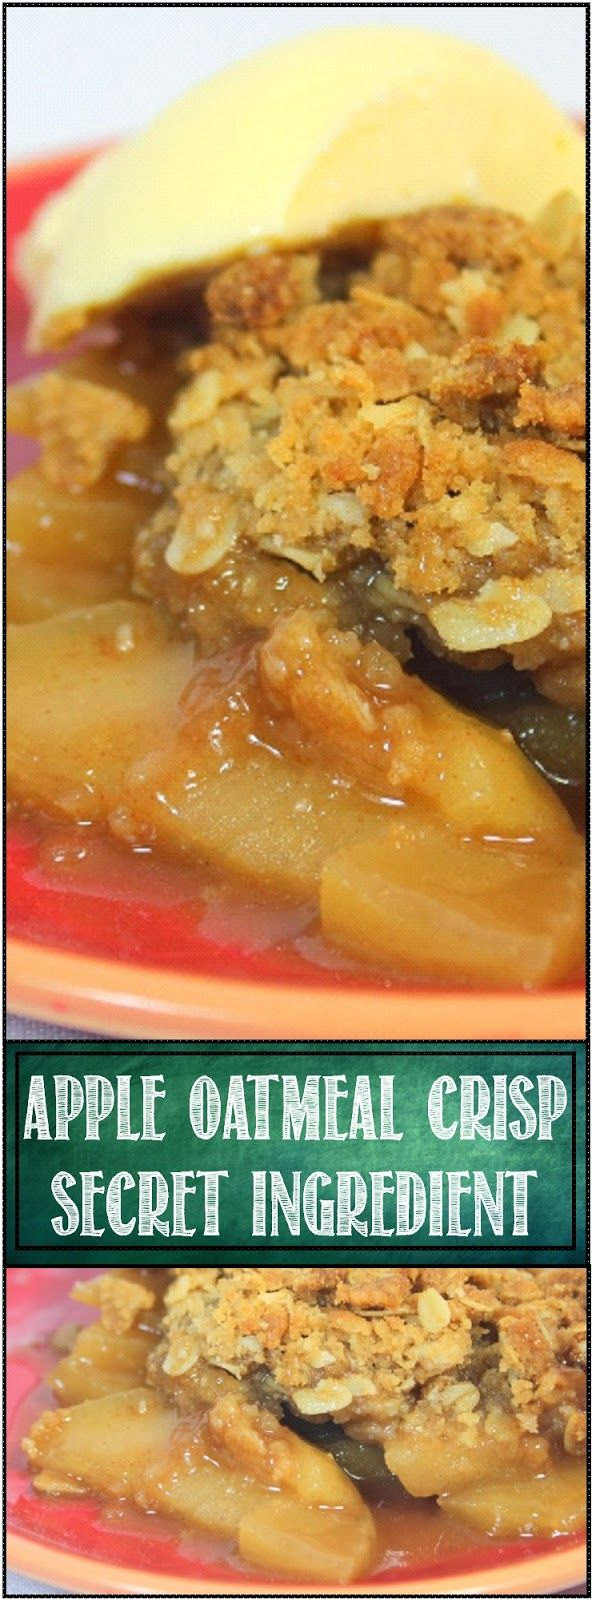 ECRET INGREDIENT Apple Oatmeal Crisp Secret ingredients... little extras that add an additional layer of flavor to a dish. This is a basic apple crisp recipe. Add some oatmeal and you have a pretty good Apple Crisp... Add a secret ingredient and the dish snaps with crowd pleasing flavor!